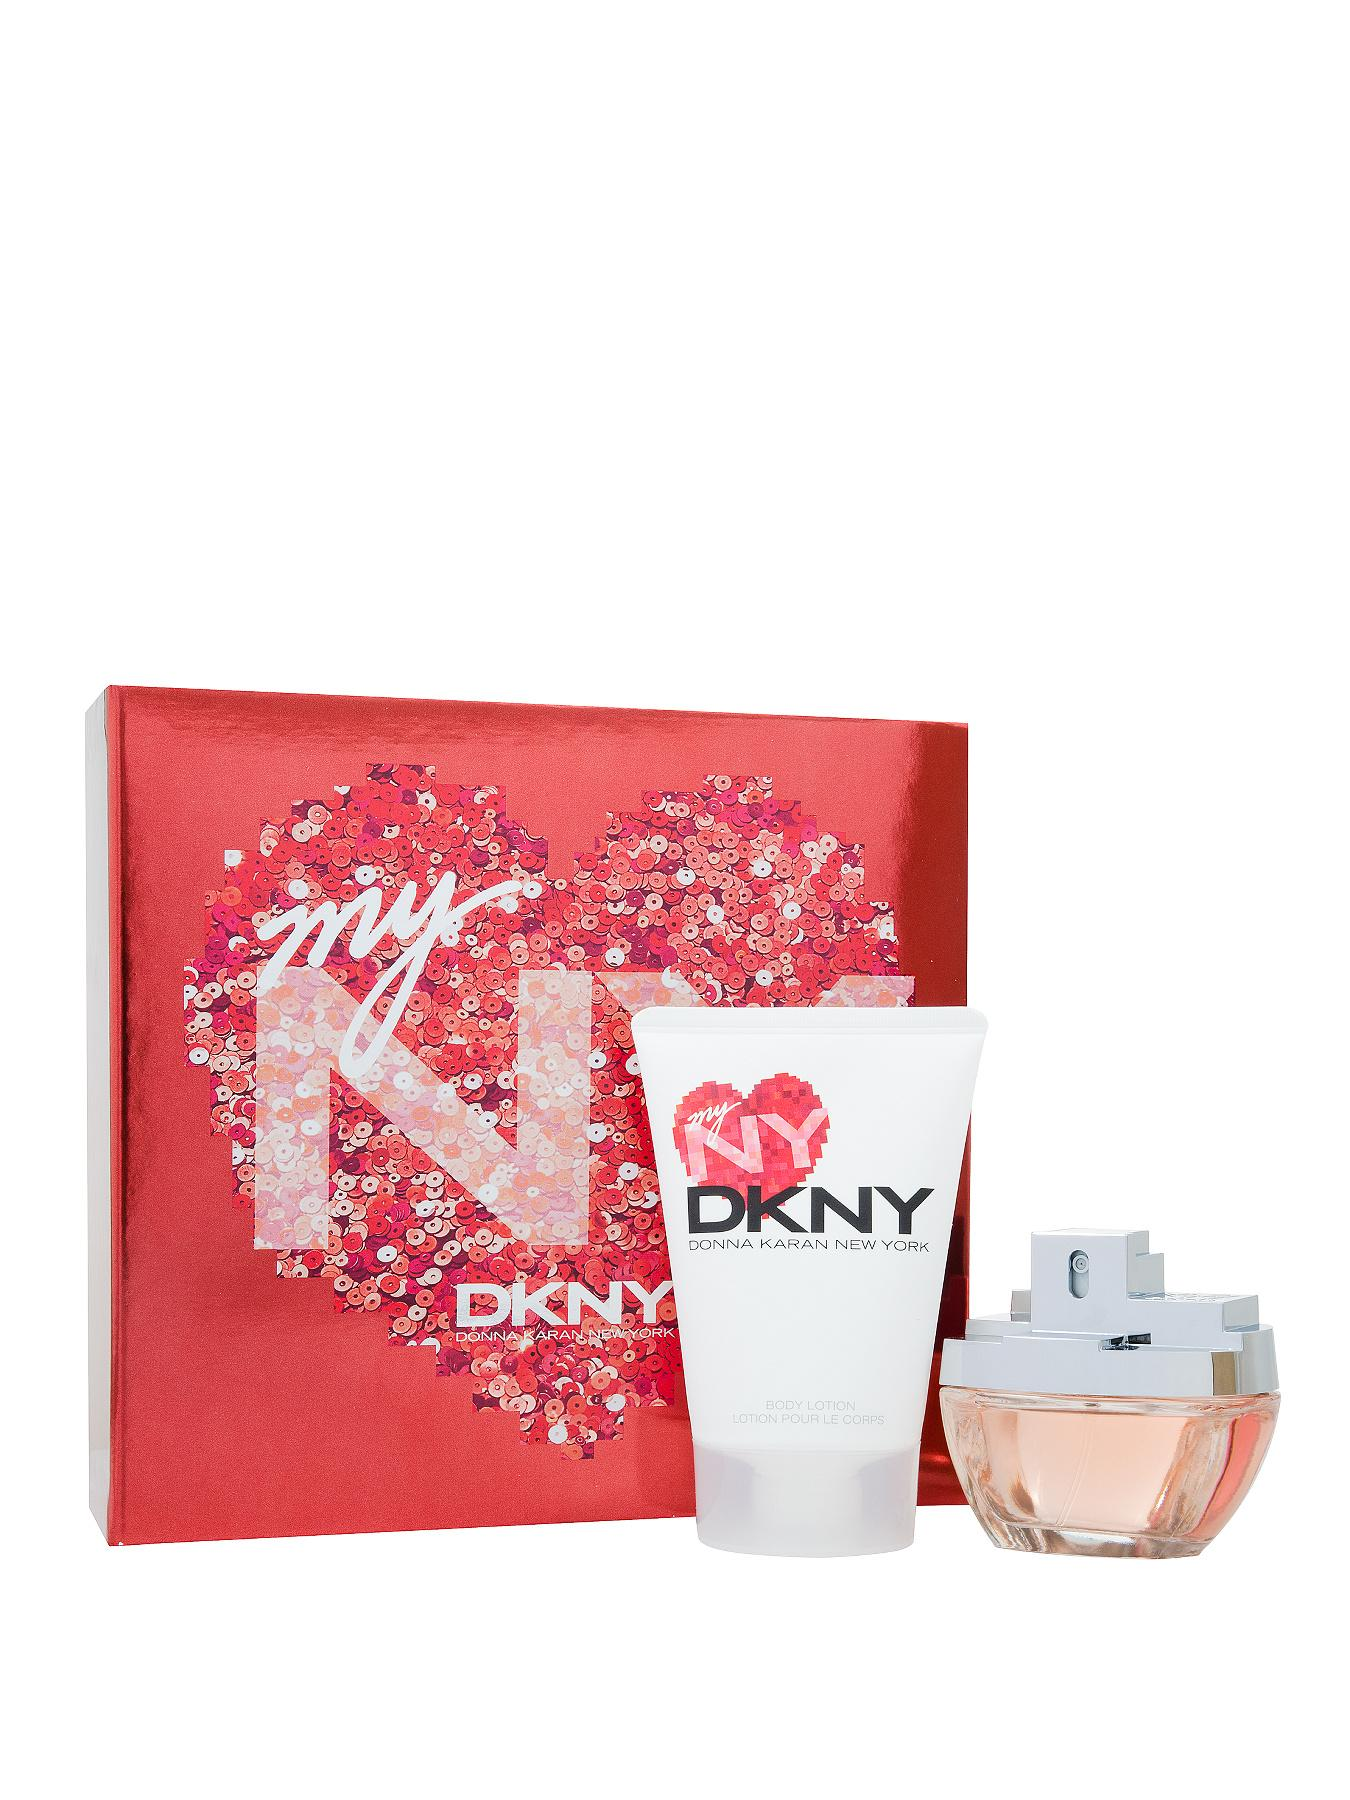 DKNY MyNY 50ml EDP. Body Lotion and Pouch Gift Set